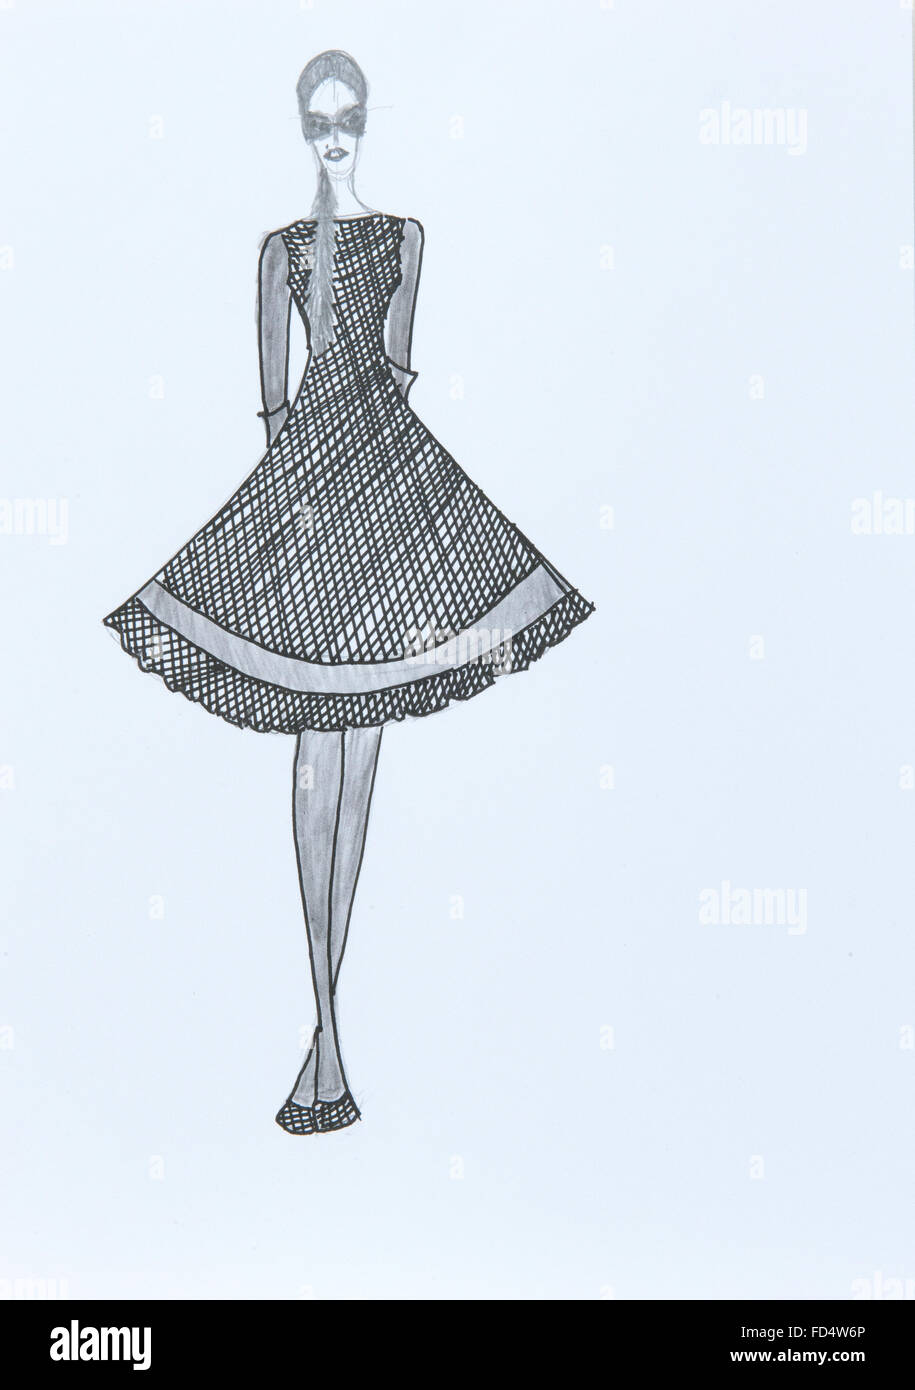 Handmade fashion sketch fashion draw of a woman dress in black white